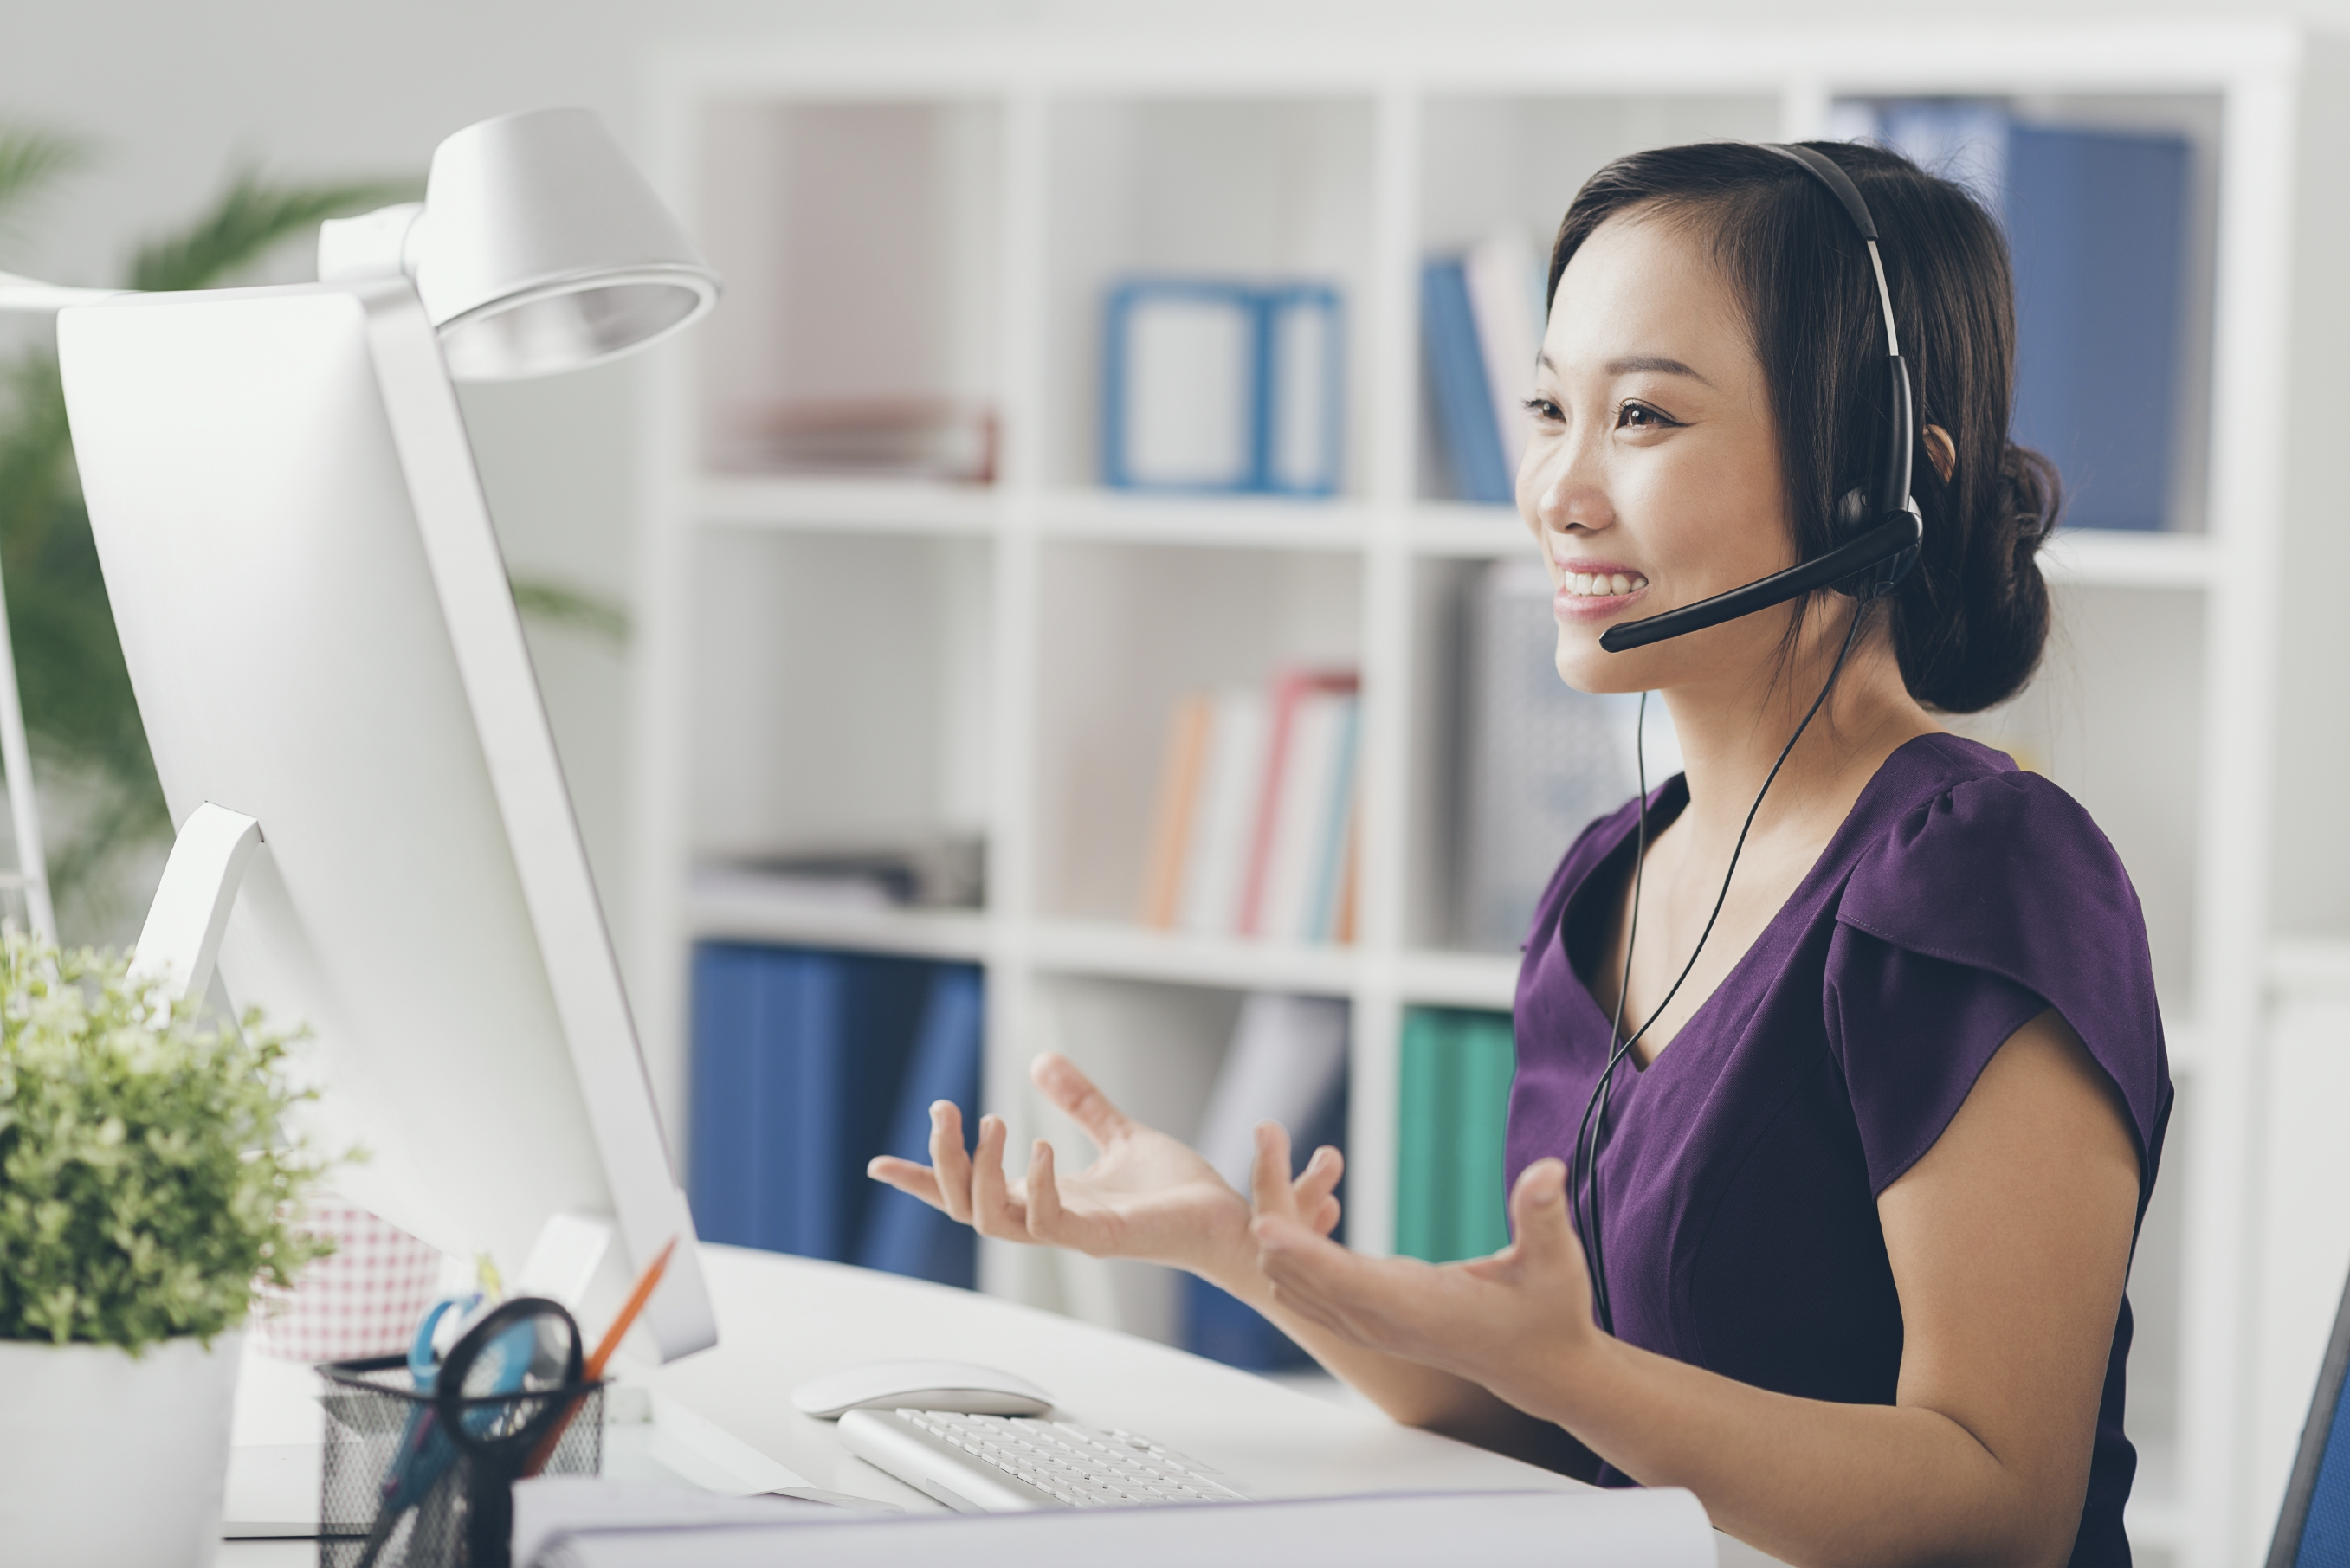 Contact Center Outsourcing